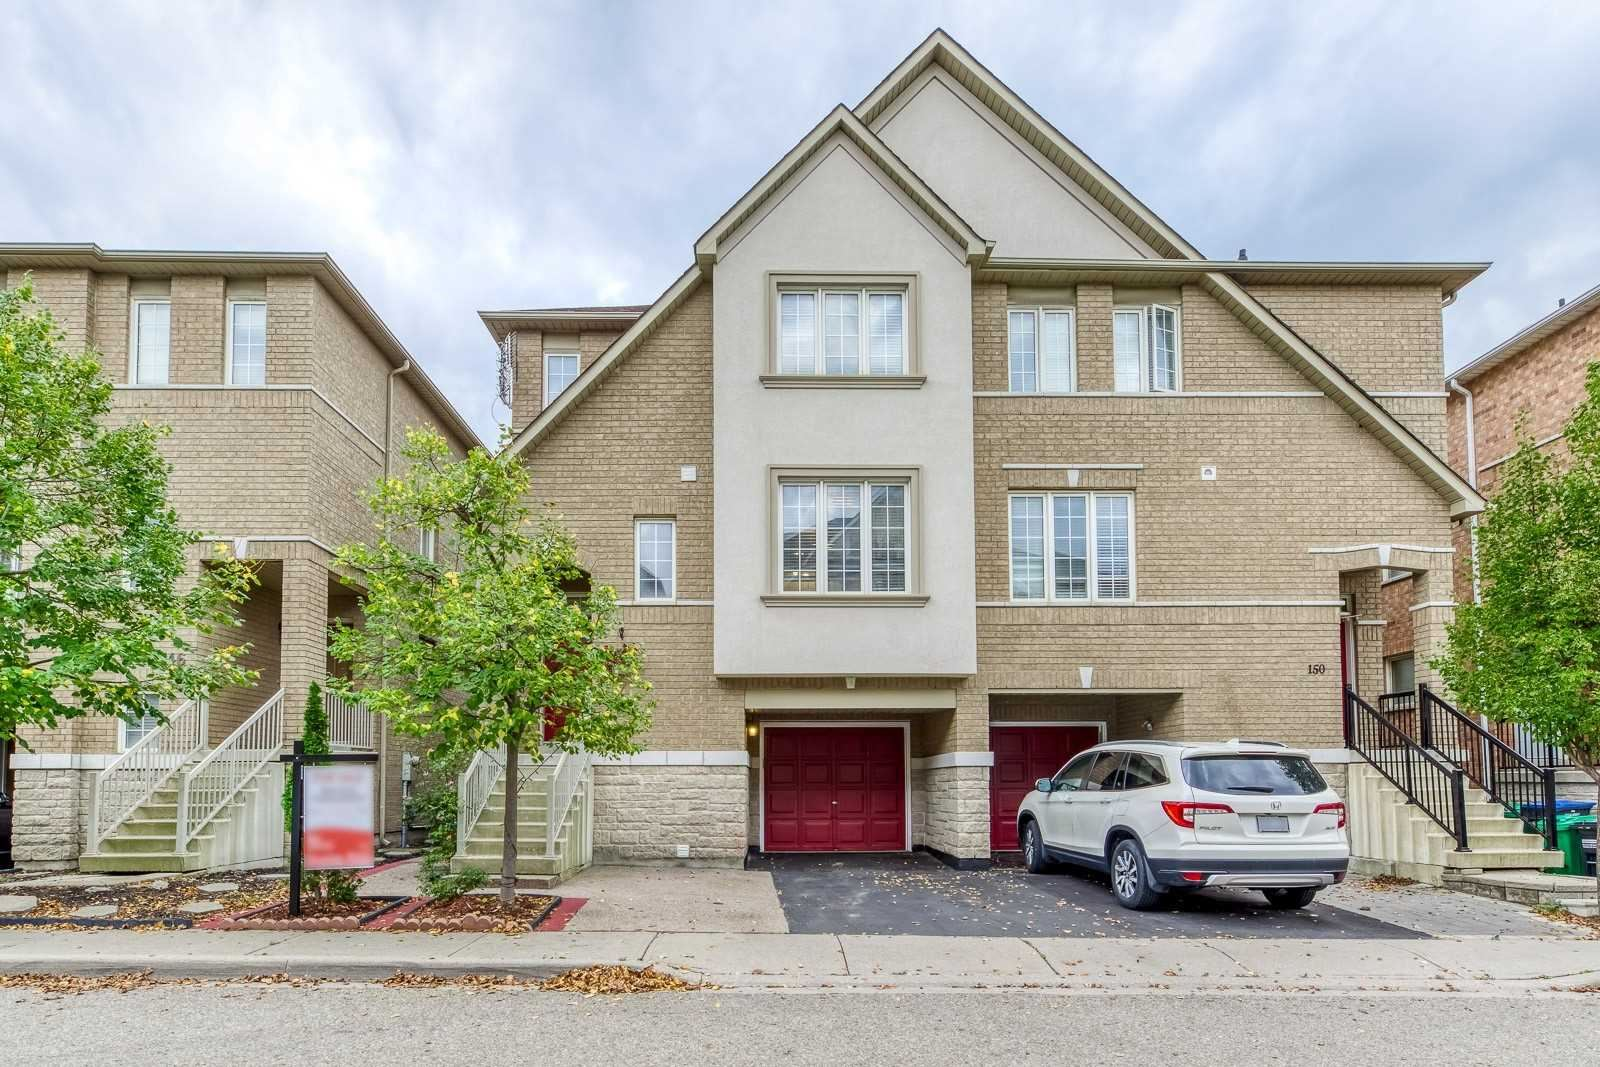 7155 Magistrate Terr #148, Mississauga, ON L5W1Y9 - MLS#: W5400067